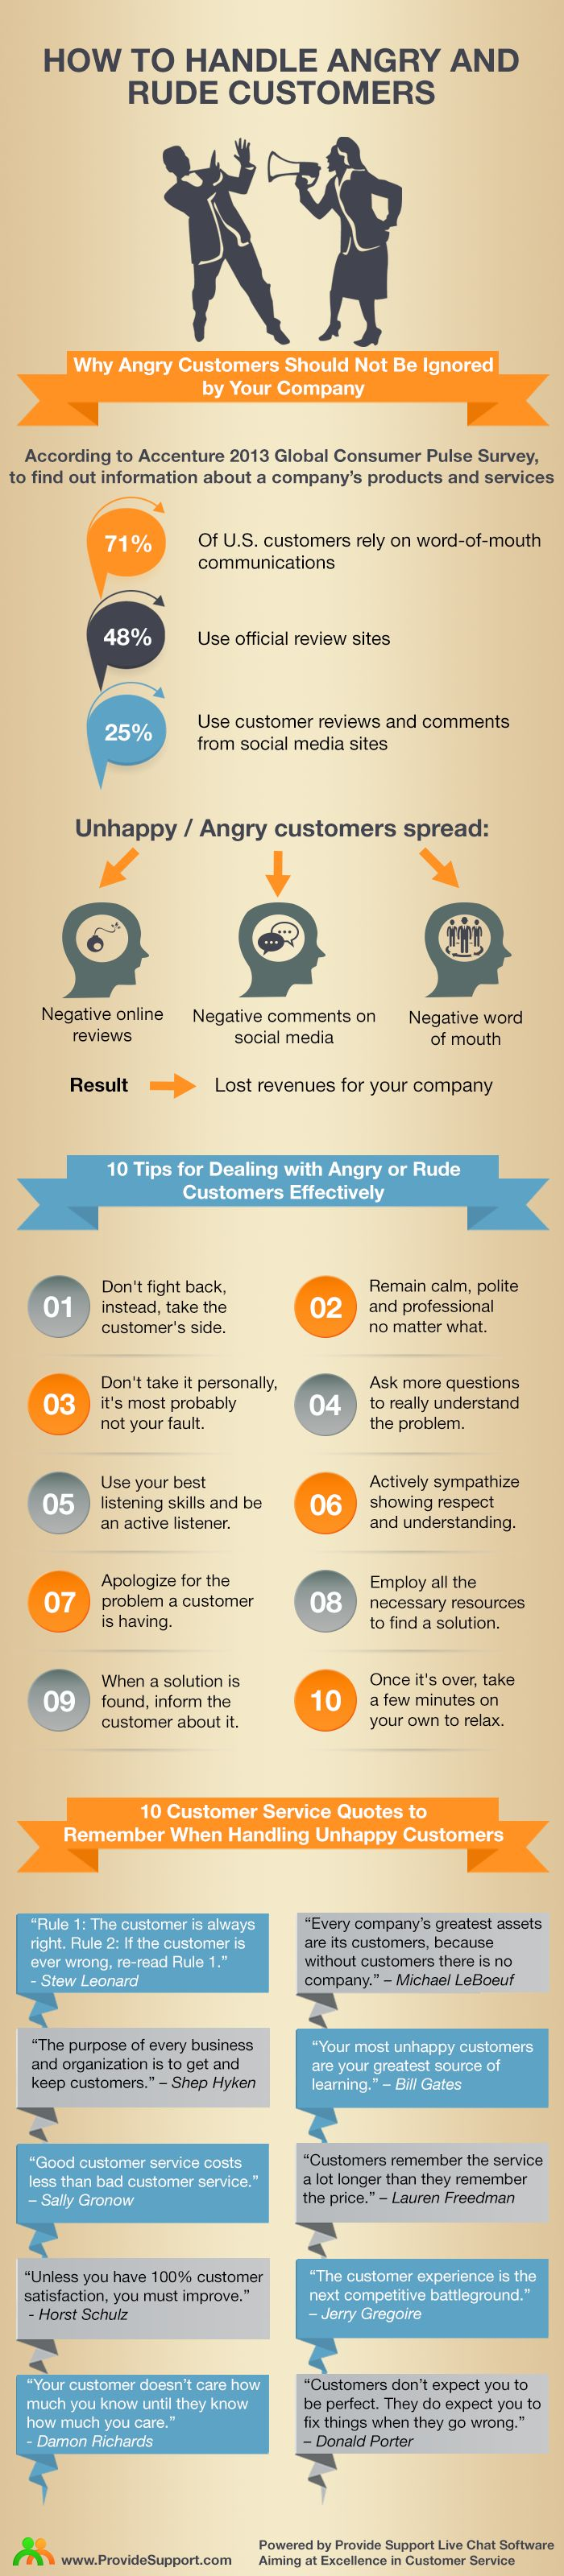 How to handle angry and rude customers #infographic